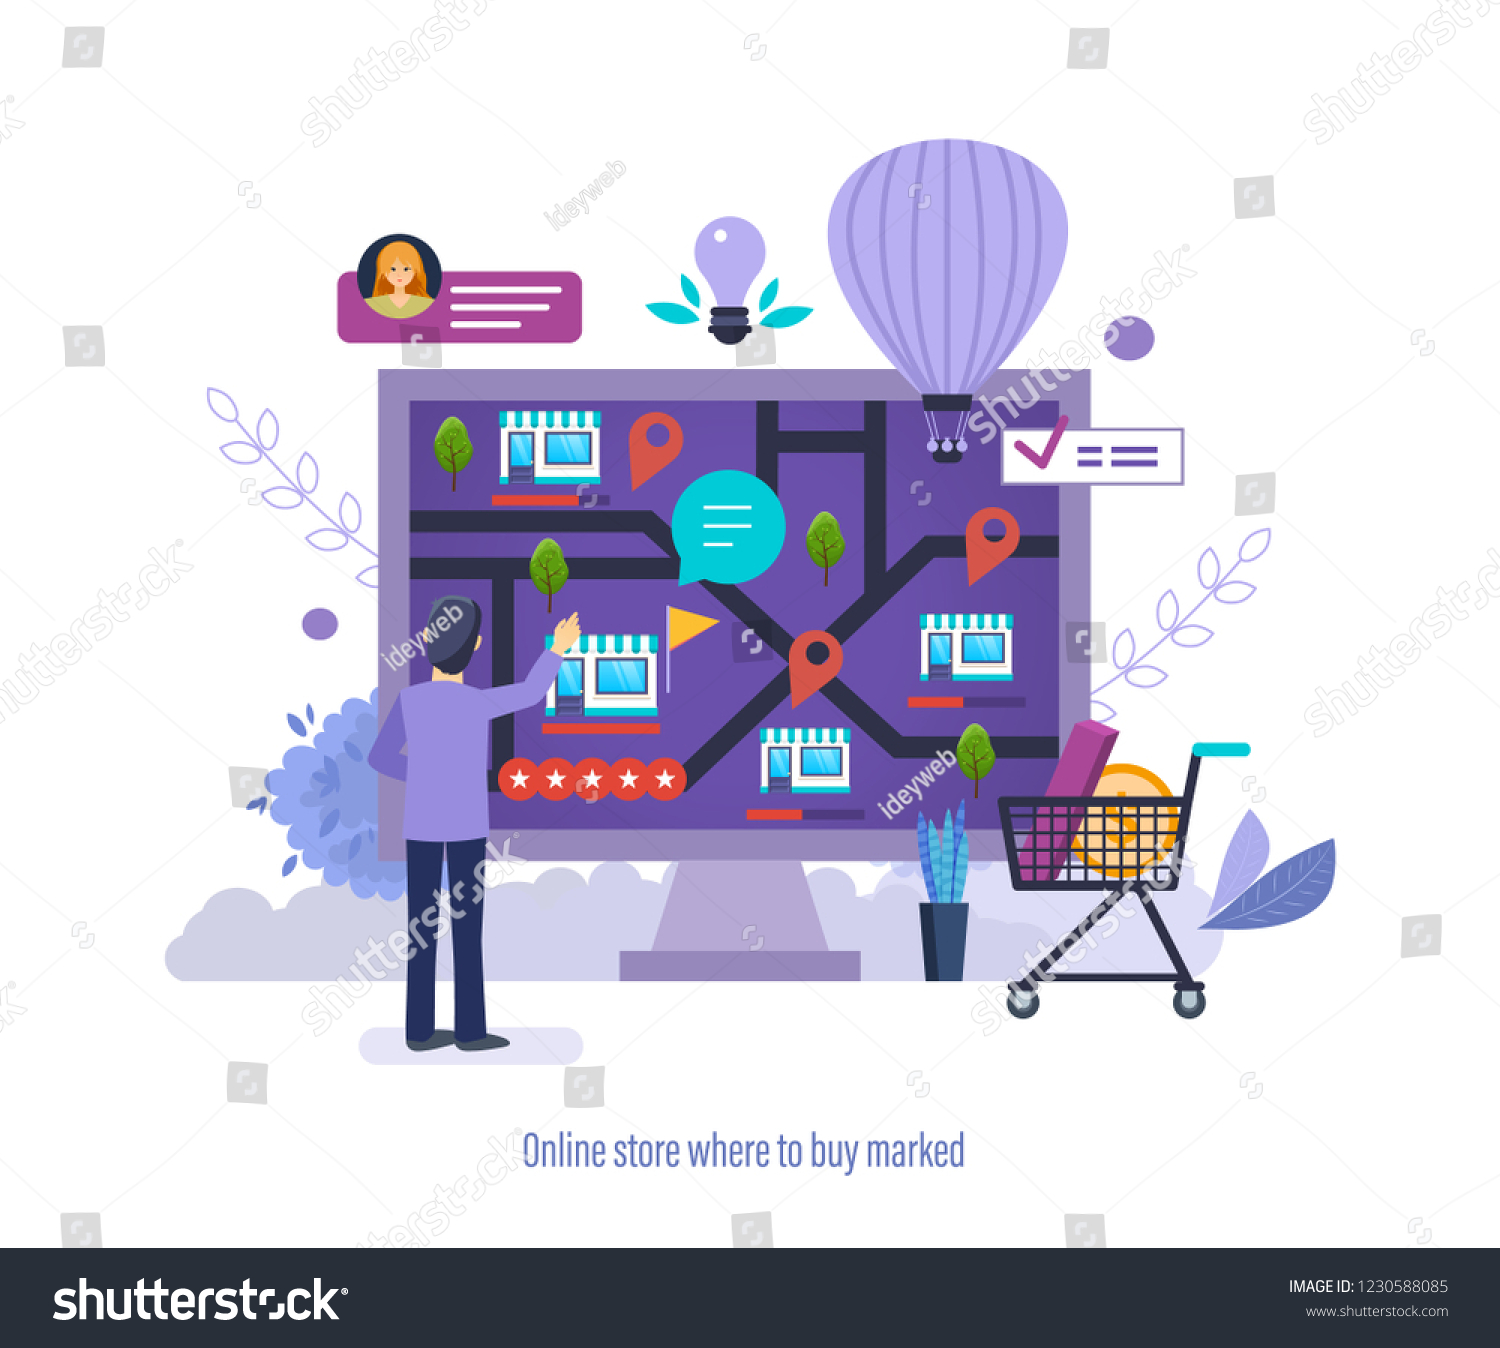 In Shop Online Store Online Store Where Buy Marked Shops Stock Vector Royalty Free